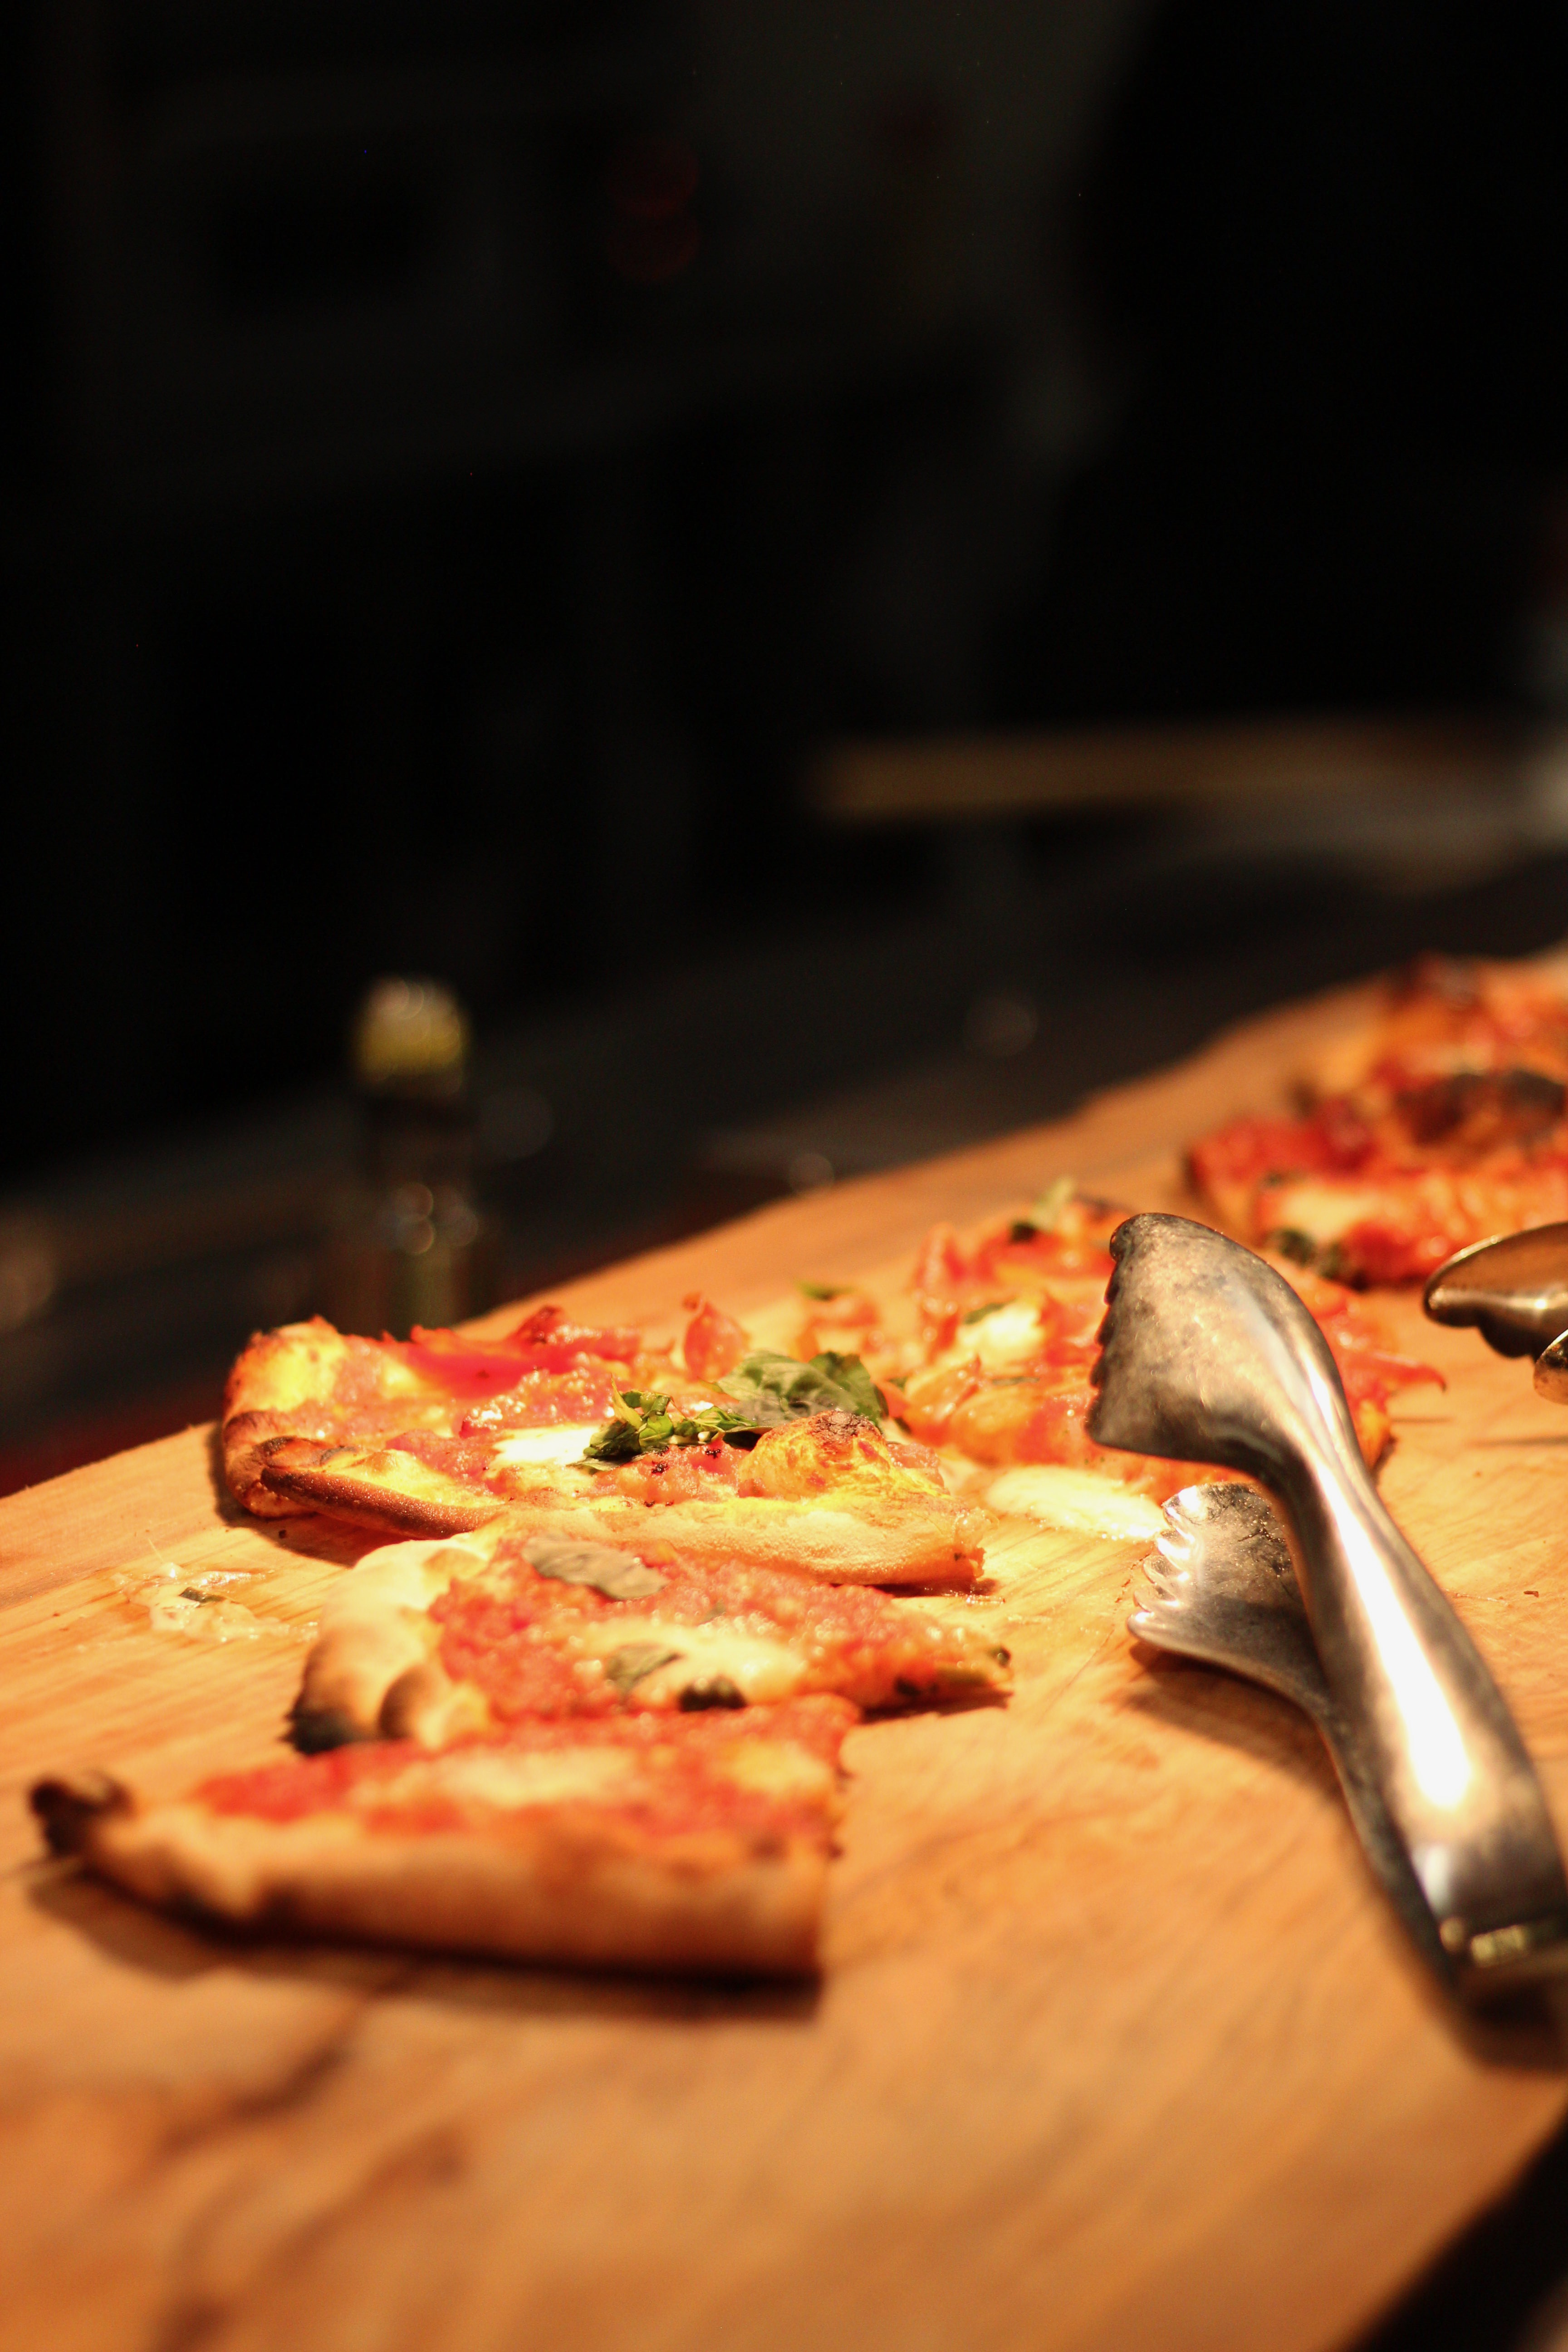 Flatbread for bloggers to try at the Le Chateau Parc event